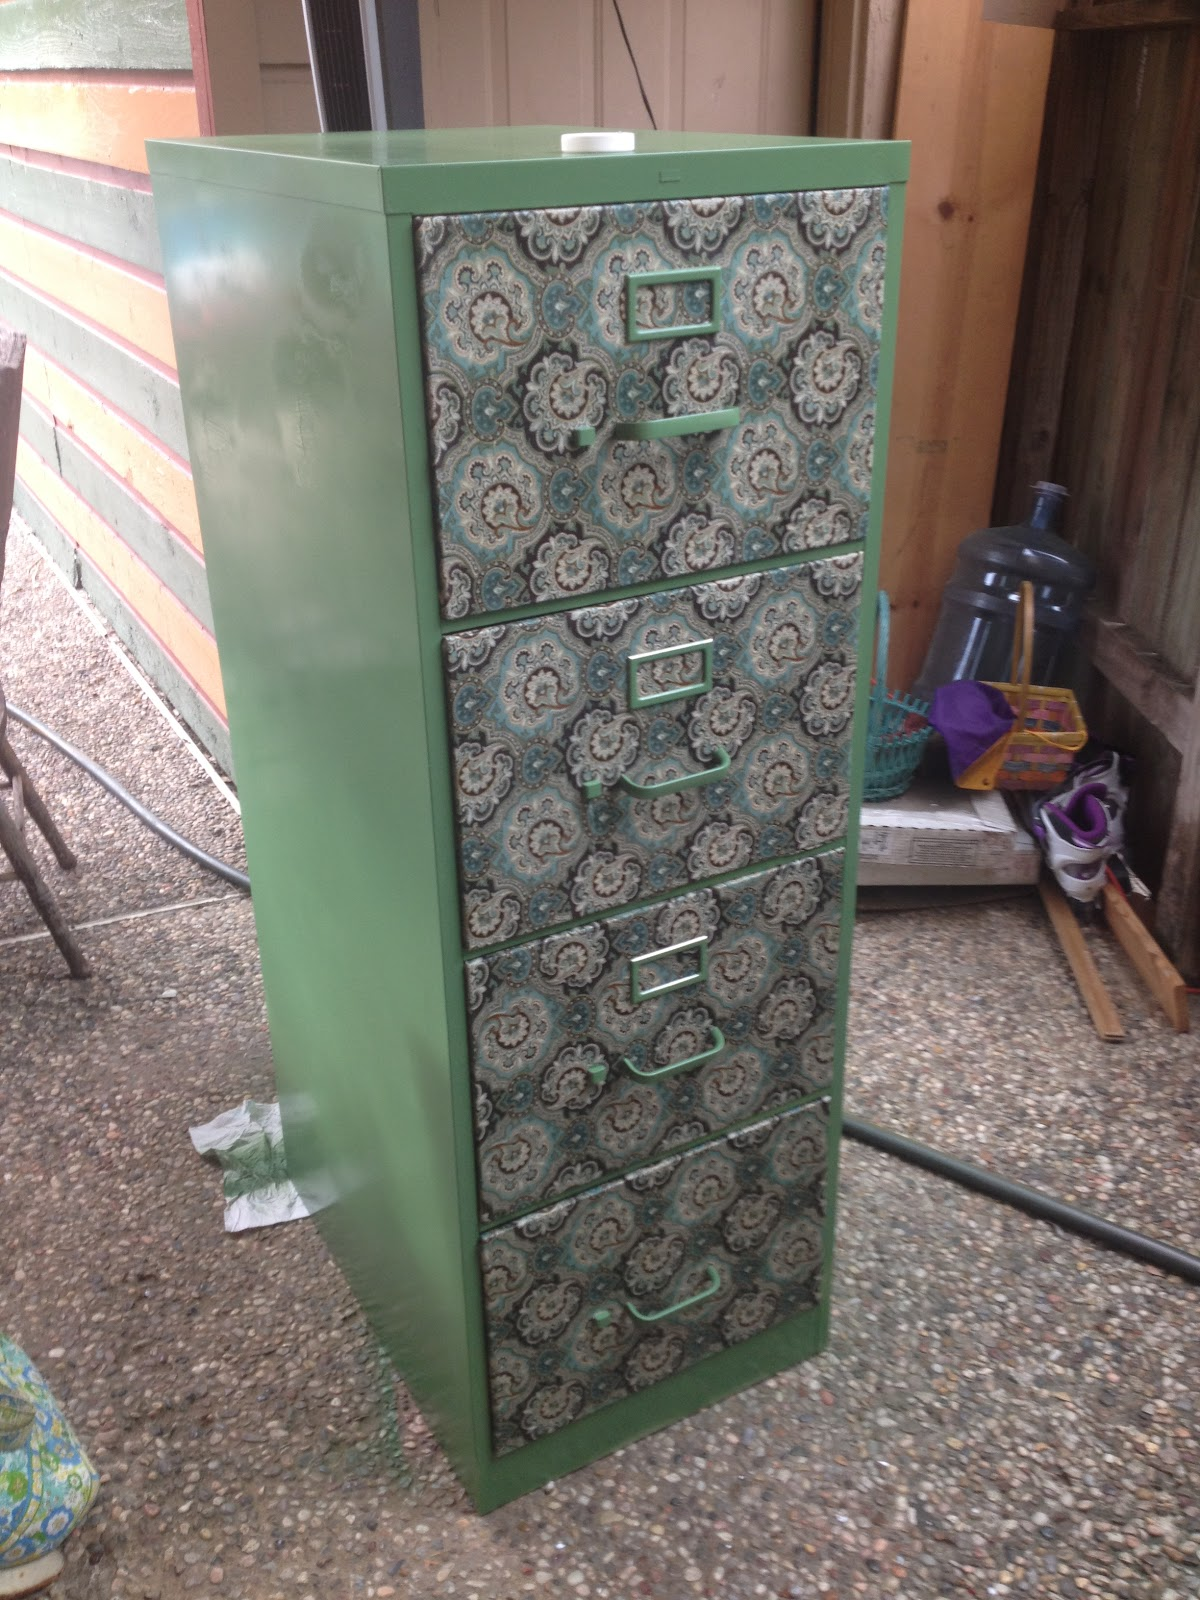 Katy barber on up cycling a file cabinet Upcycled metal filing cabinet